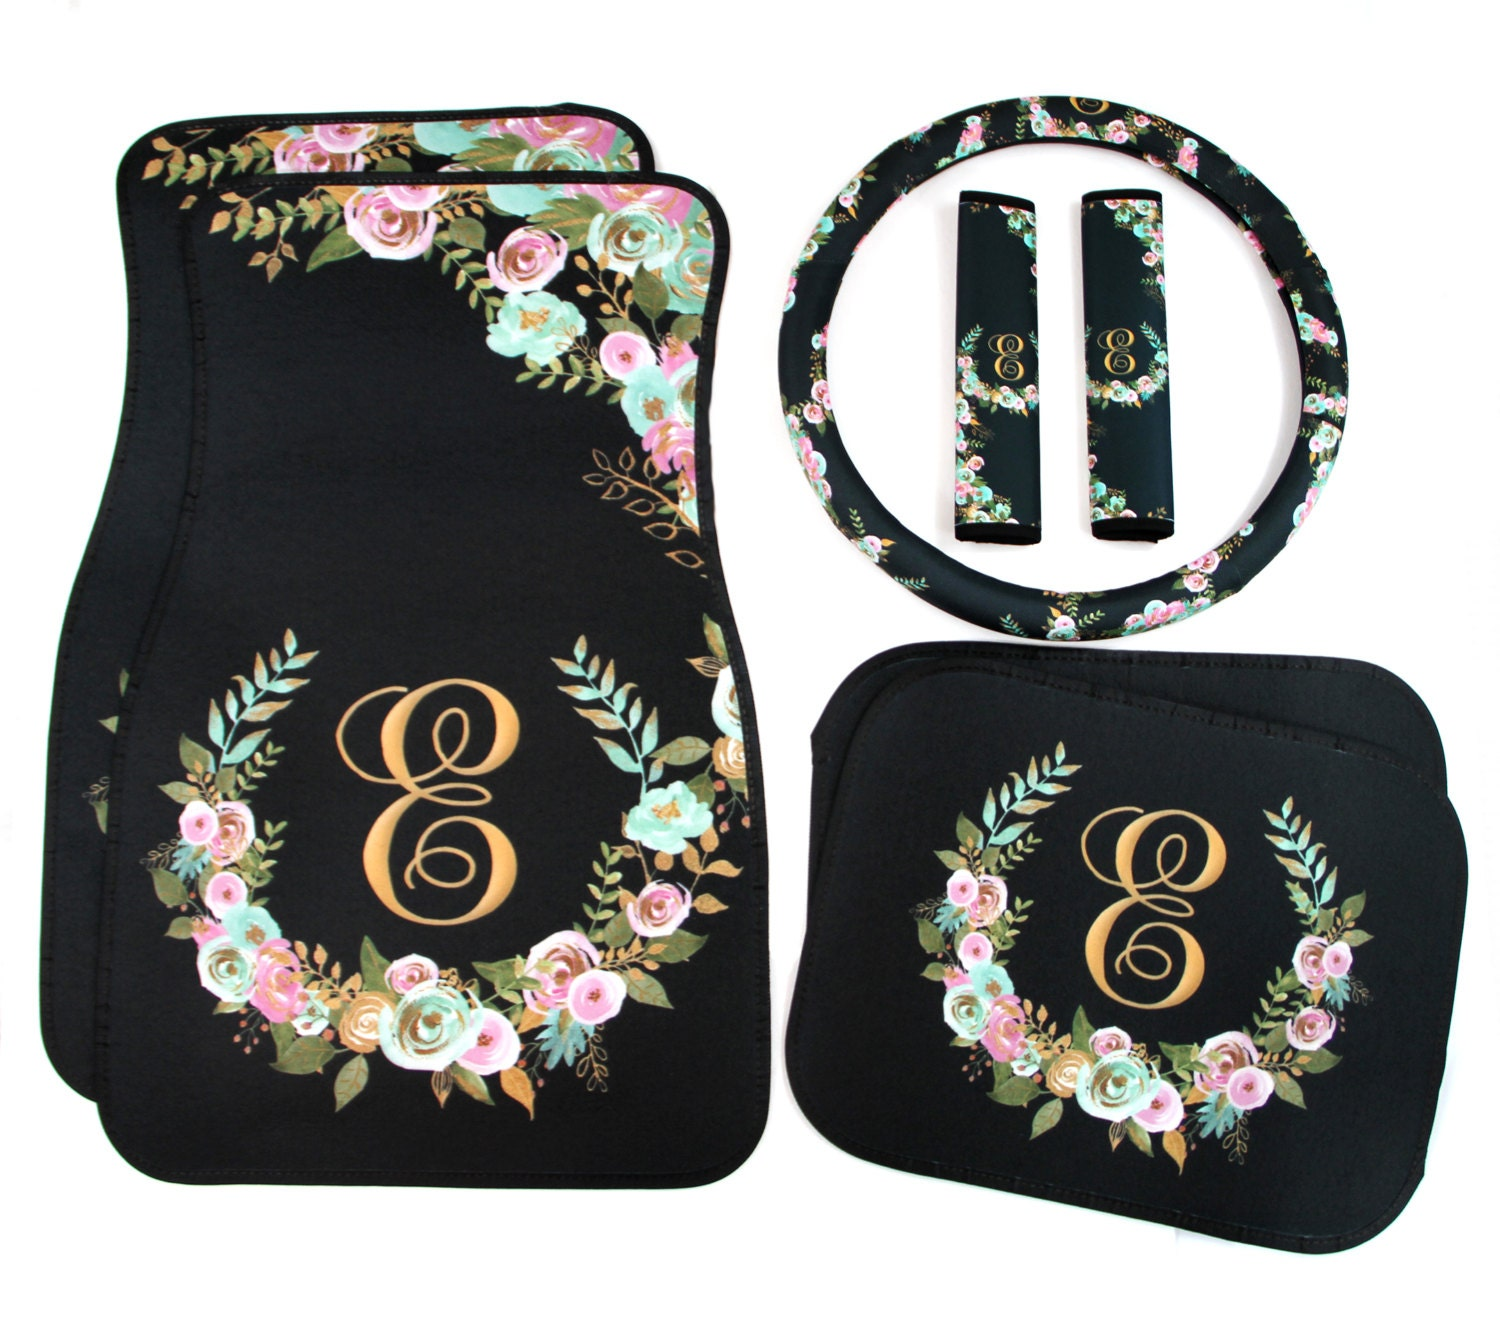 Monogrammed Floor Mats >> Mint and Gold Floral Monogrammed Car Mats Classy Black ...